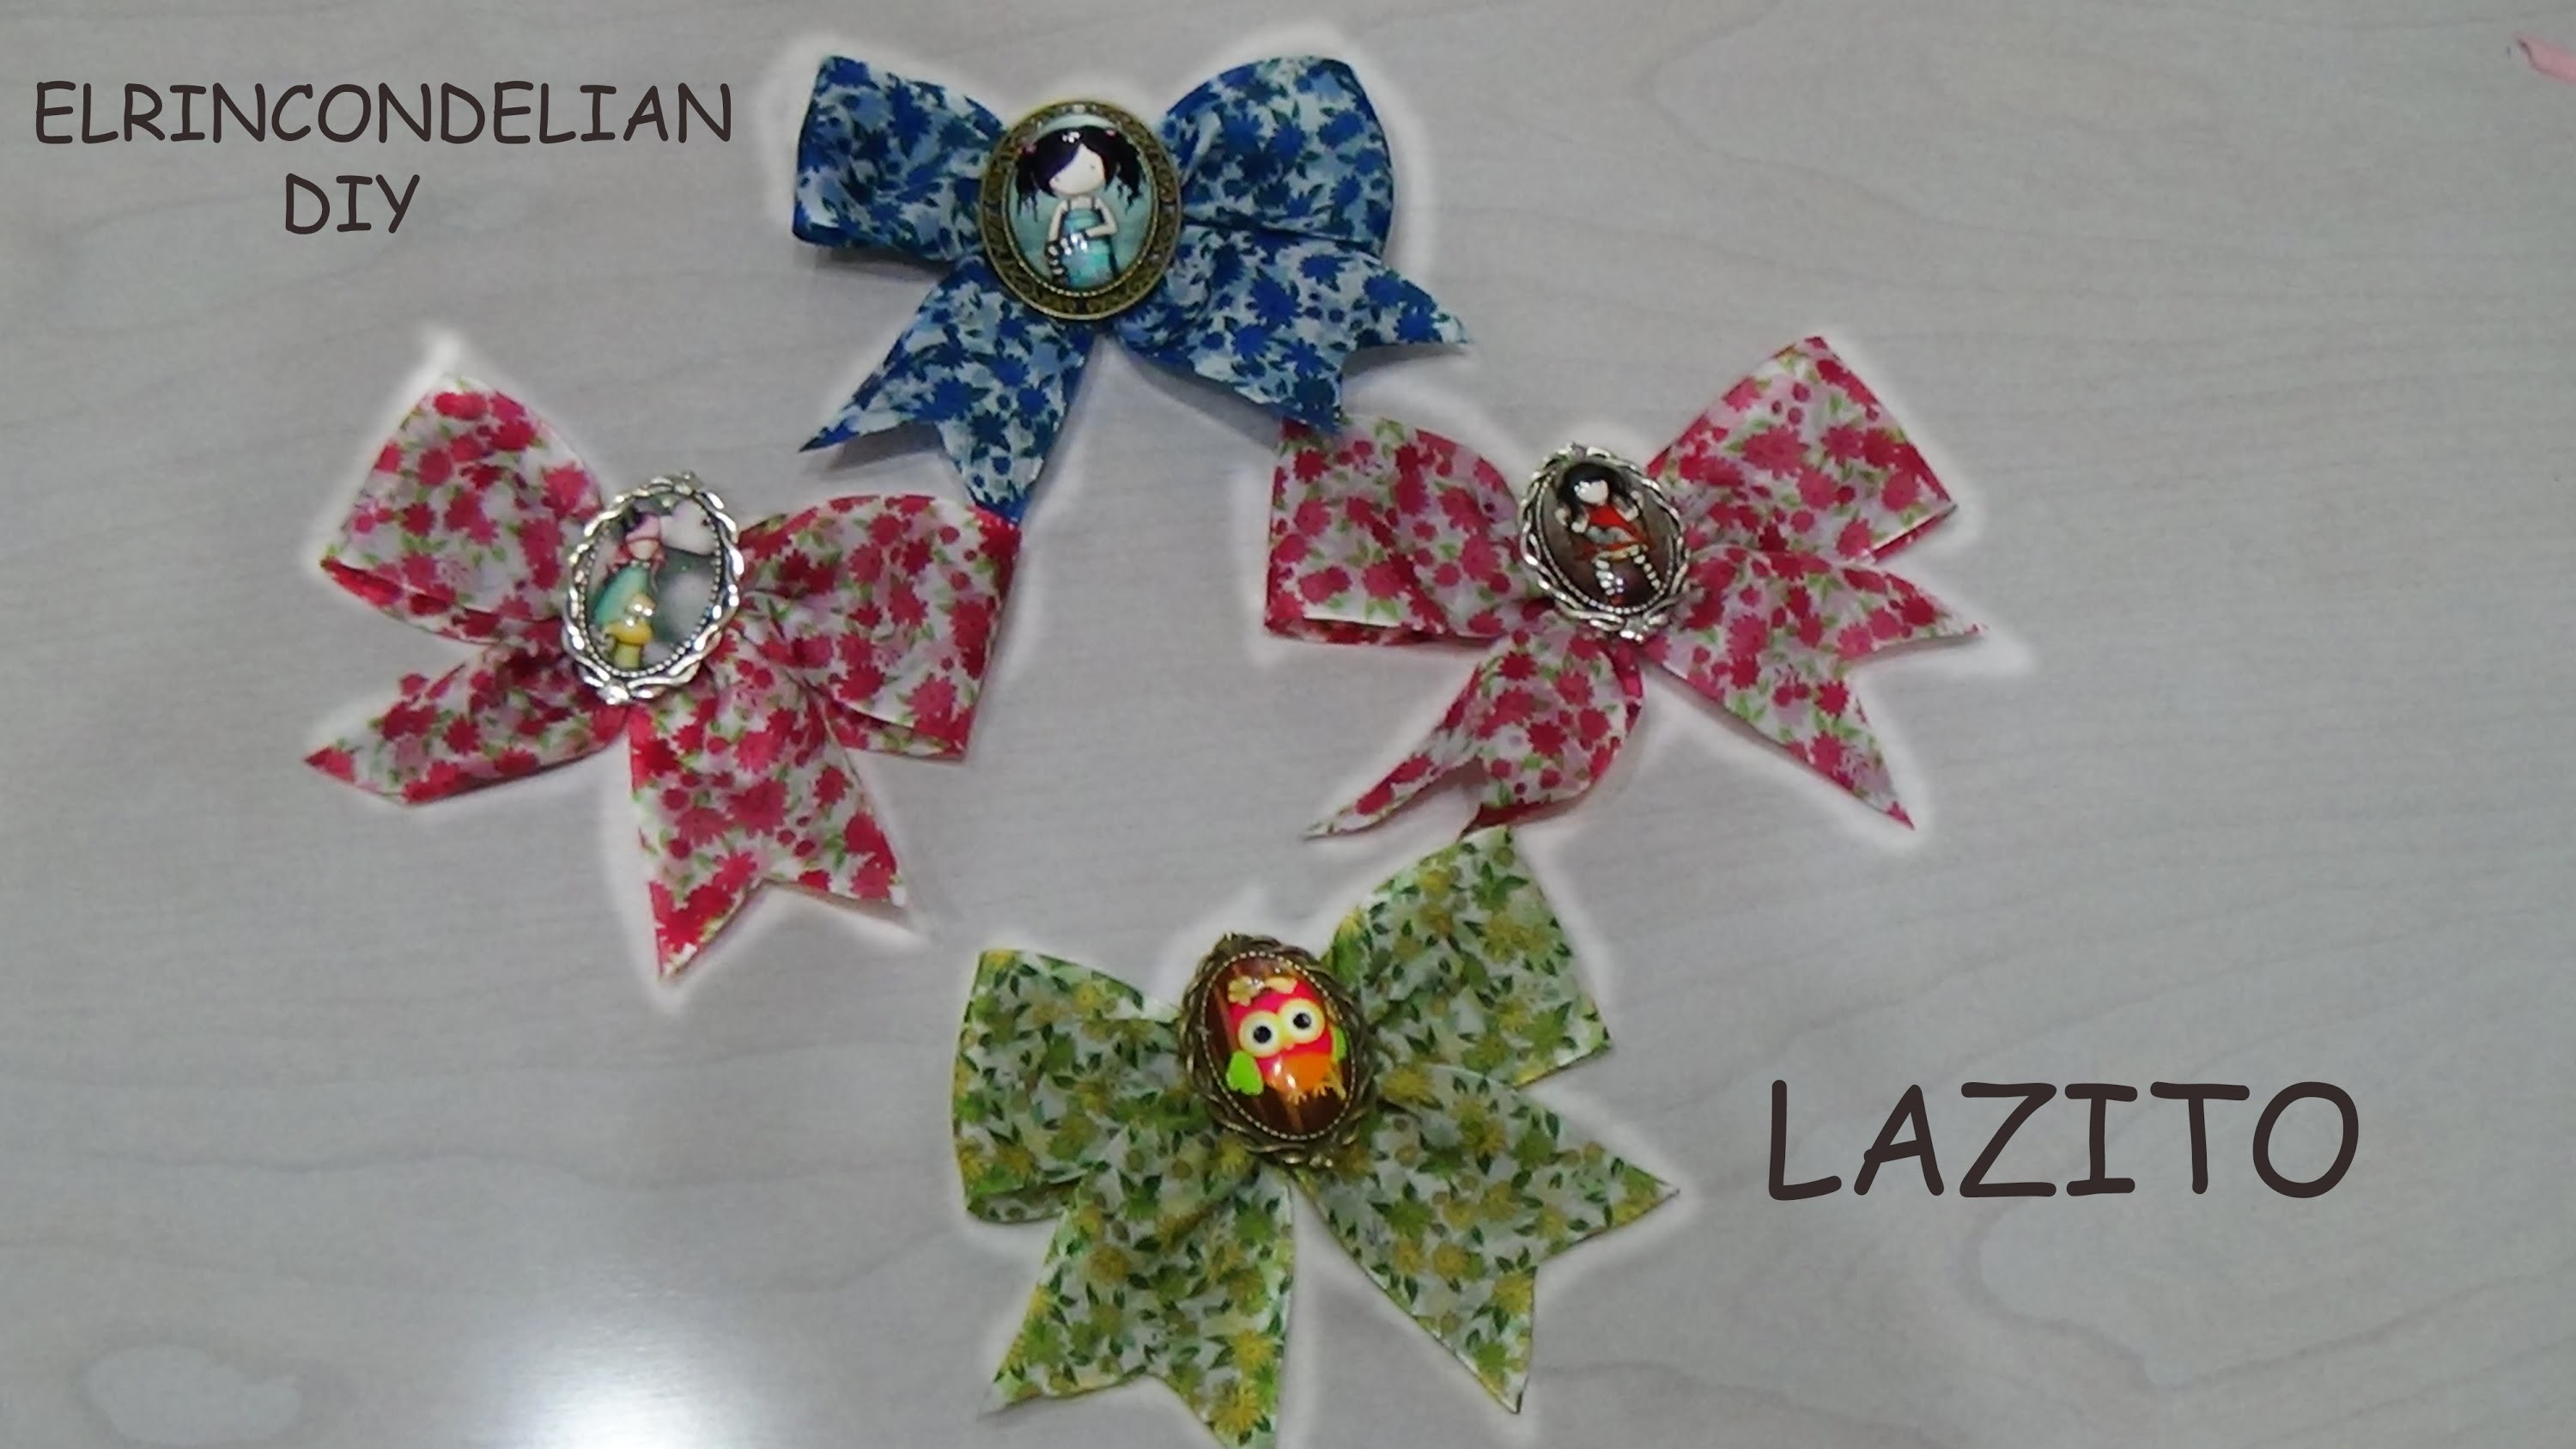 DIY-BROCHE DE LAZO Y GORJUSS